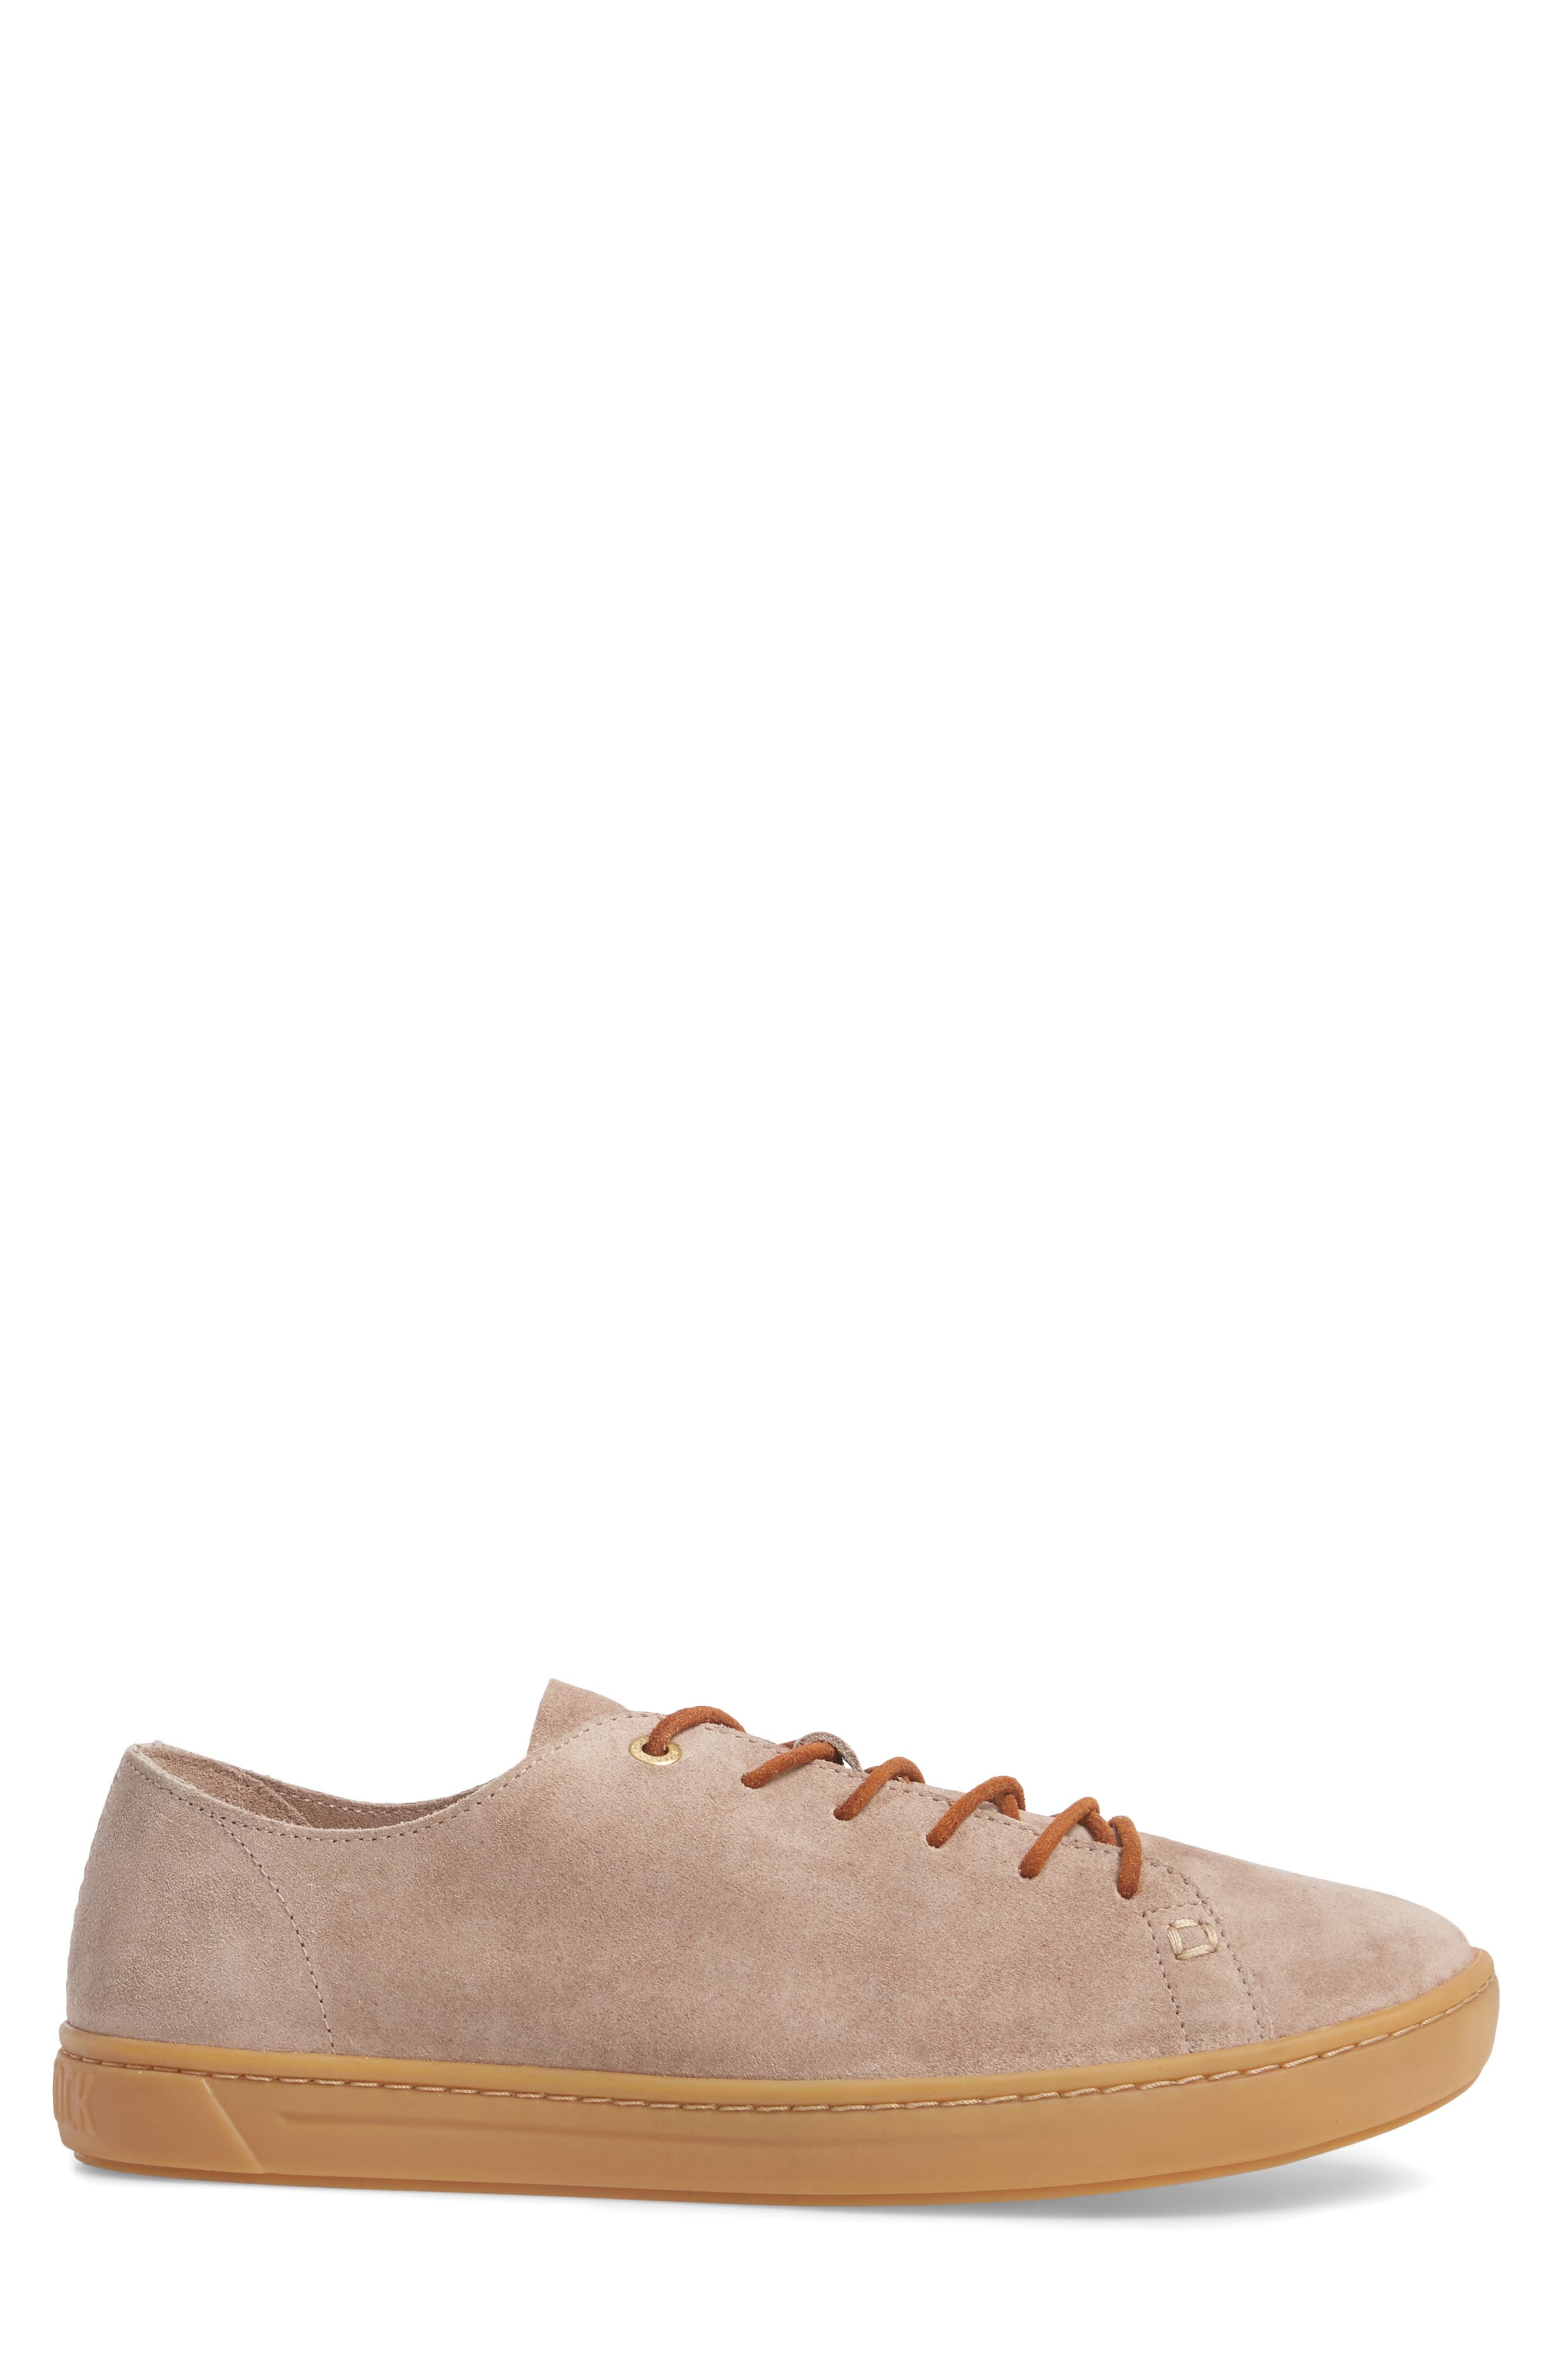 Arran Sneaker,                             Alternate thumbnail 3, color,                             Taupe Suede